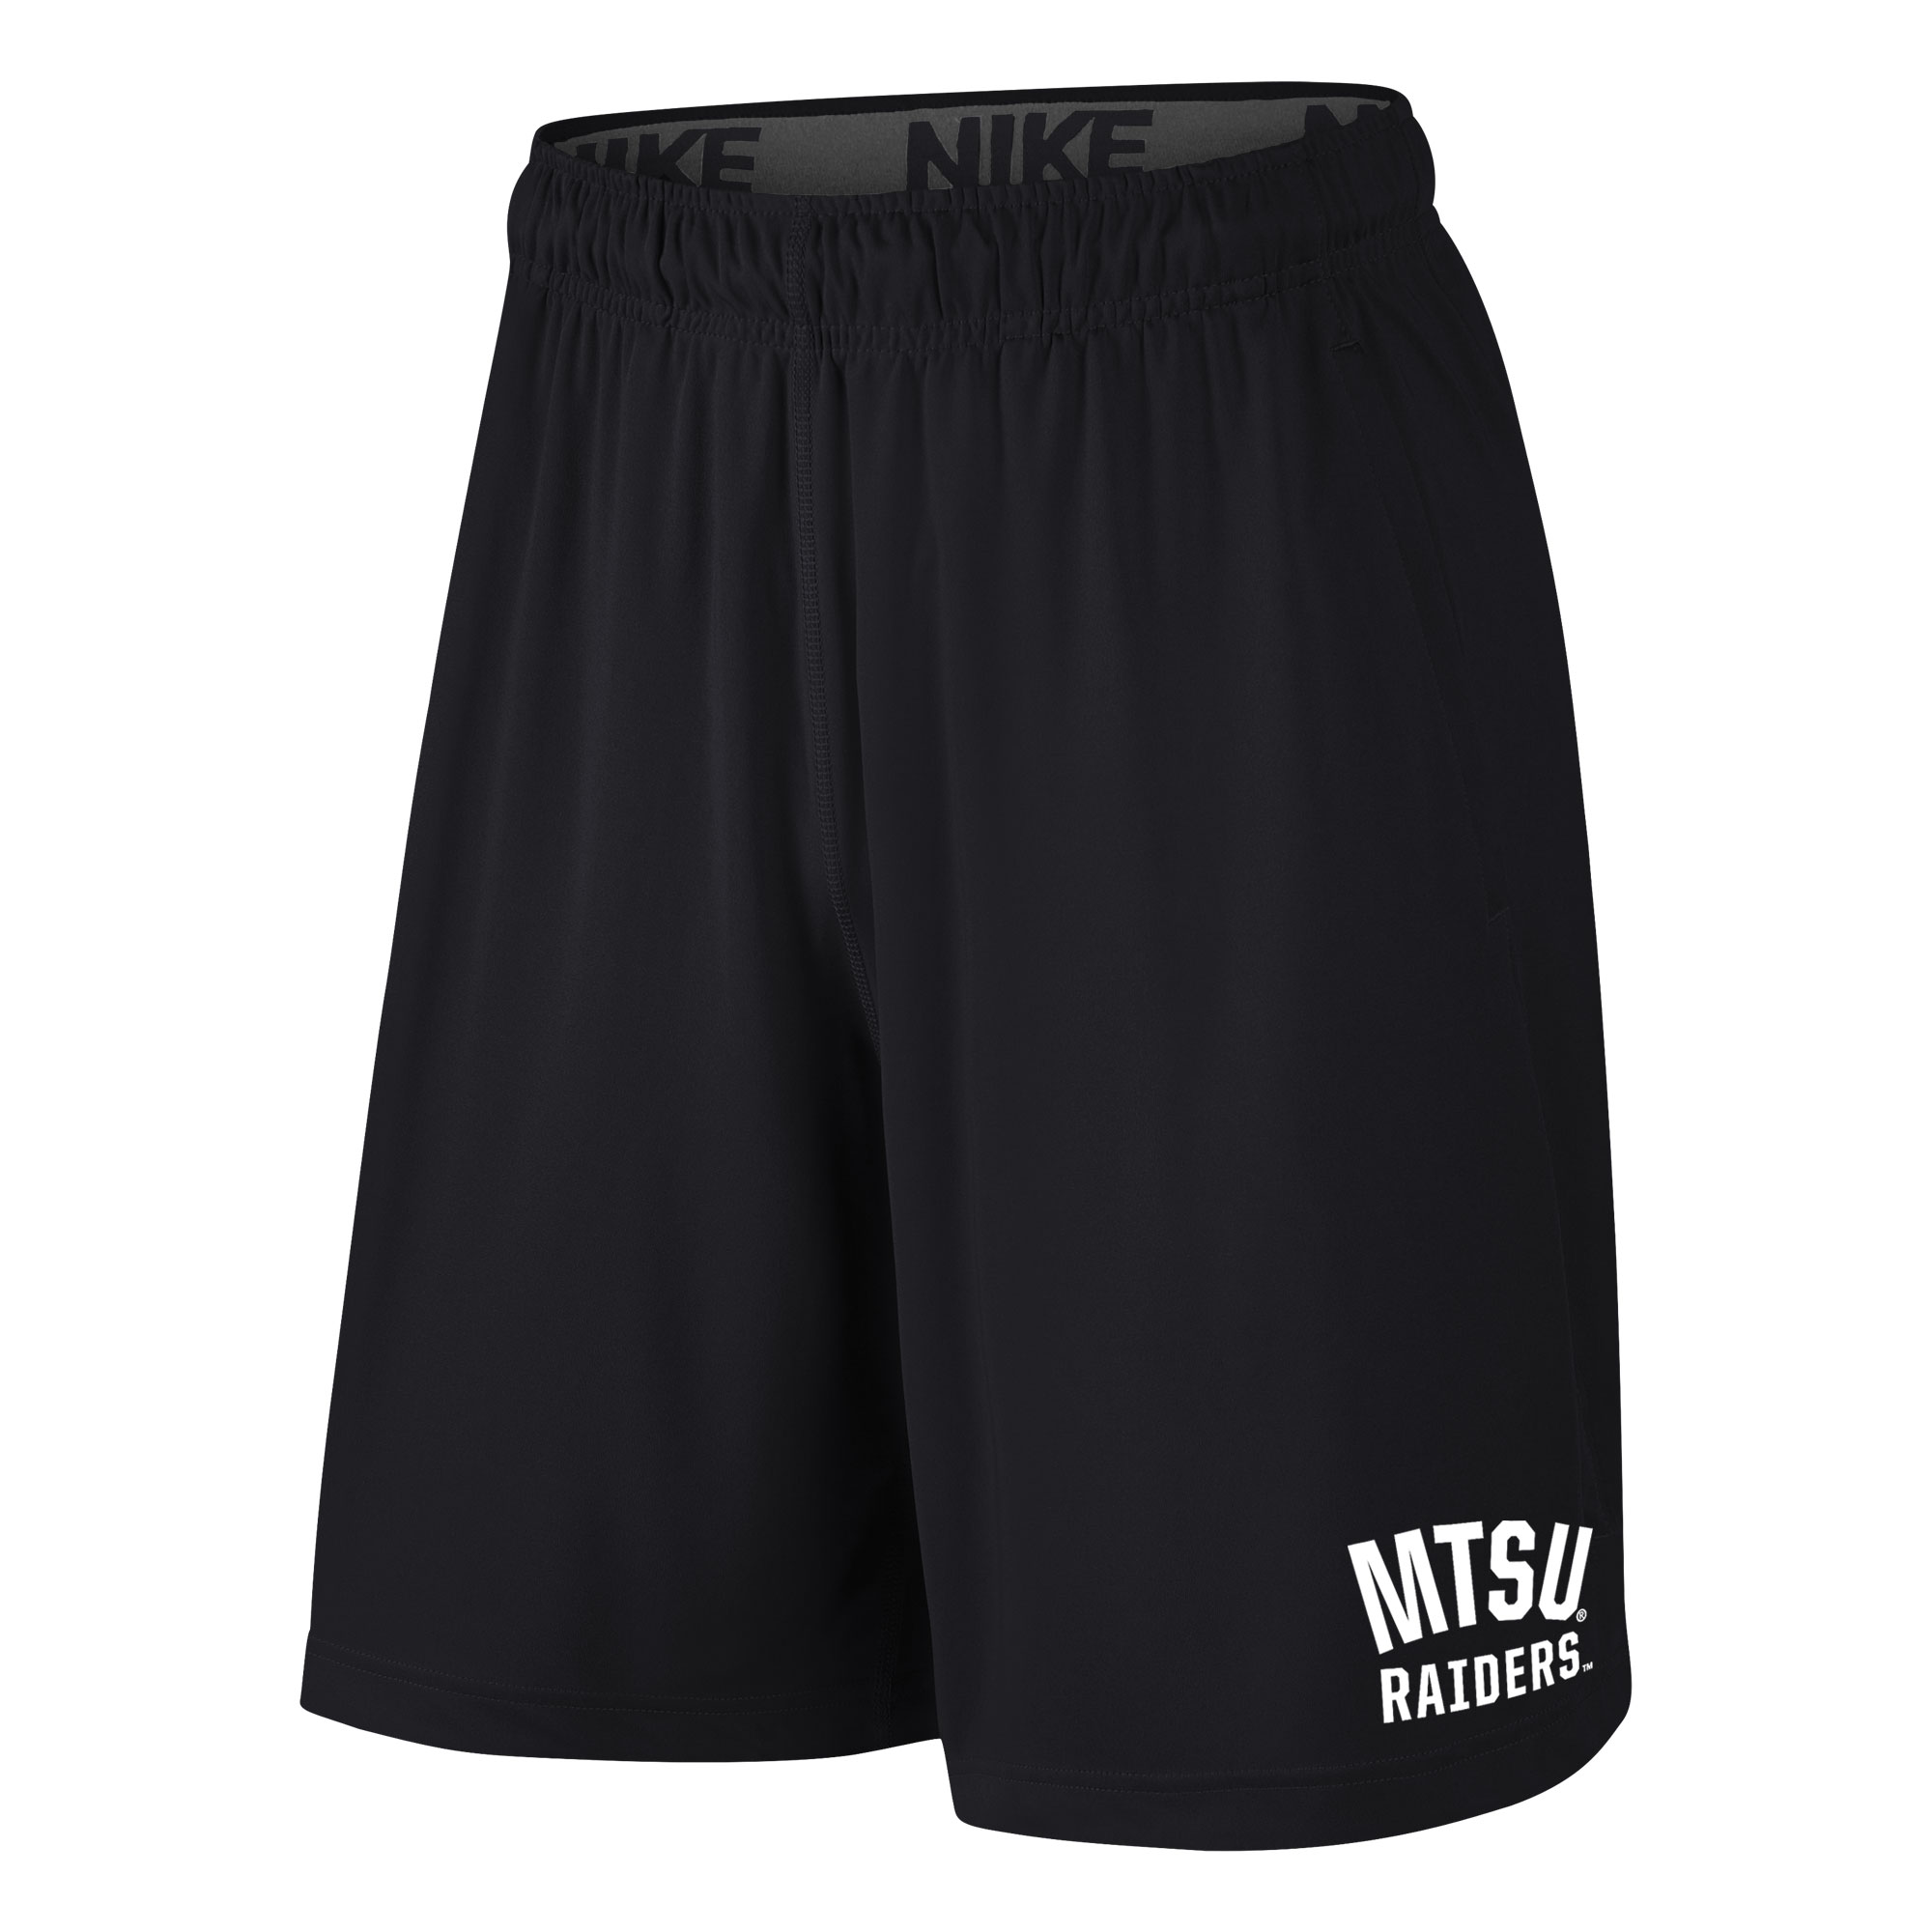 MTSU Raiders Nike® Fly Knit 2.0 Shorts